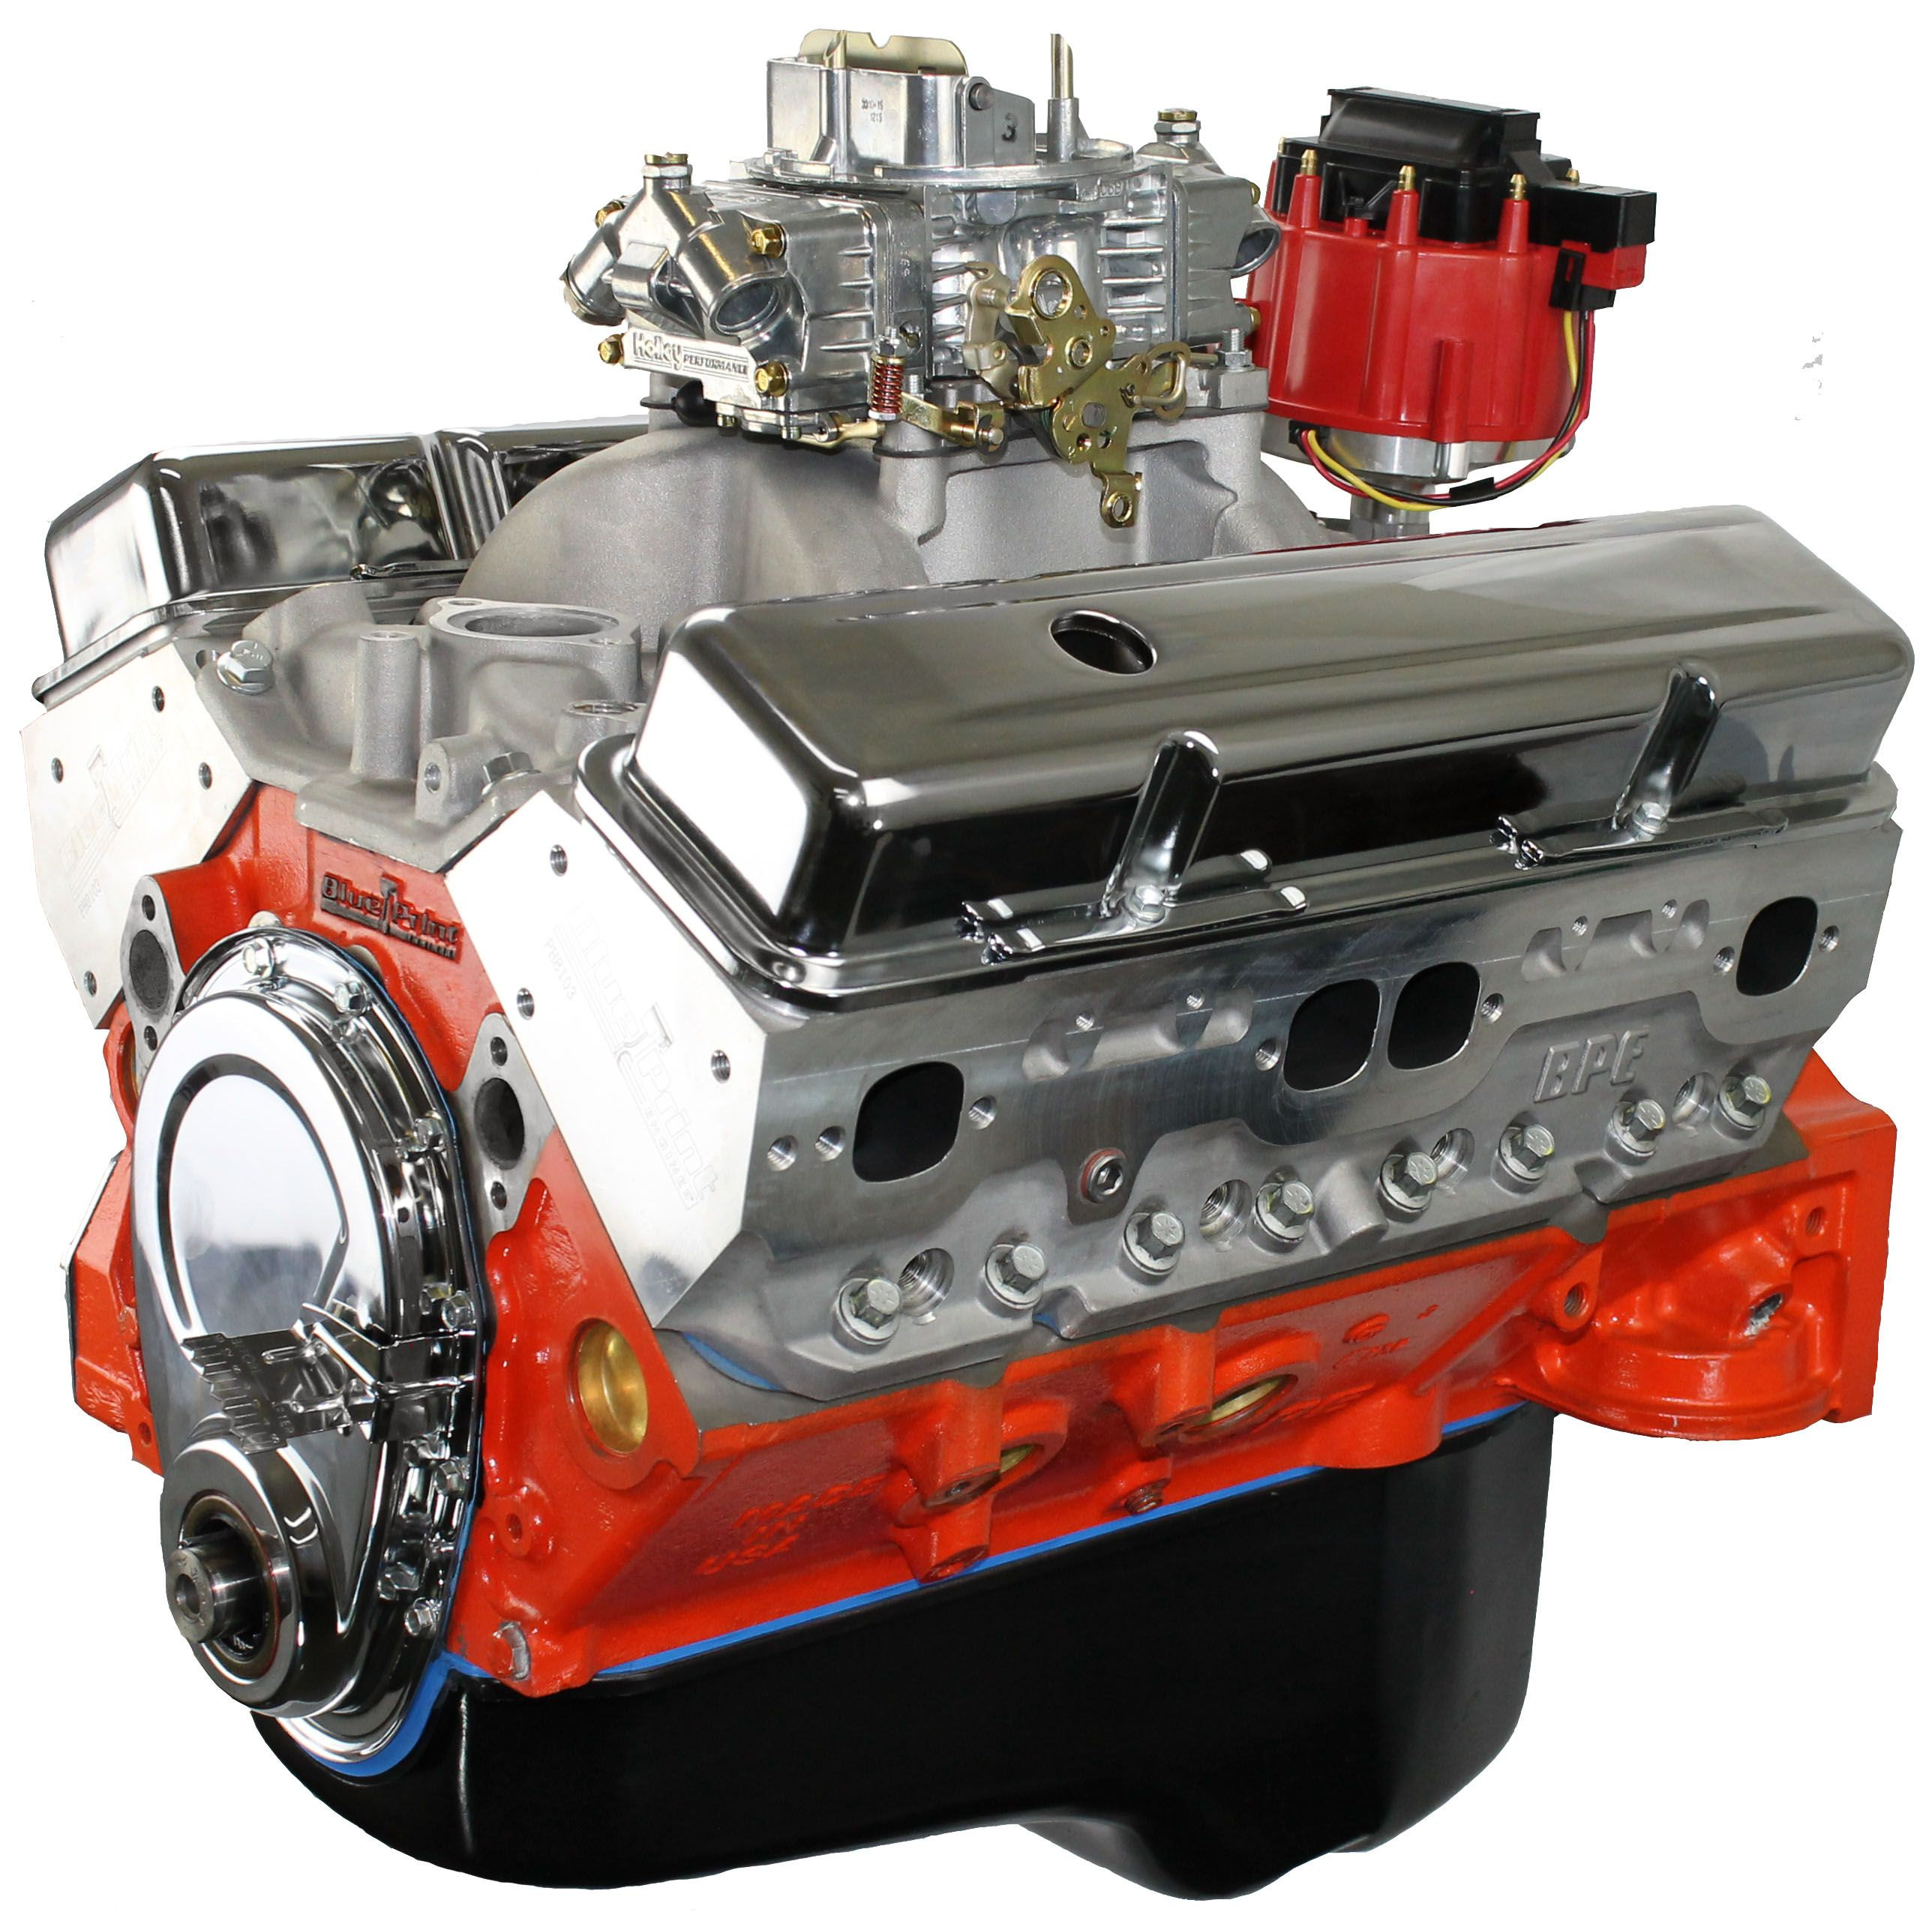 Ford Performance Engine Block 460 Svo Cast Iron: BluePrint Engine's BP4001CTC1. Rated At 460 HP/470 Torque